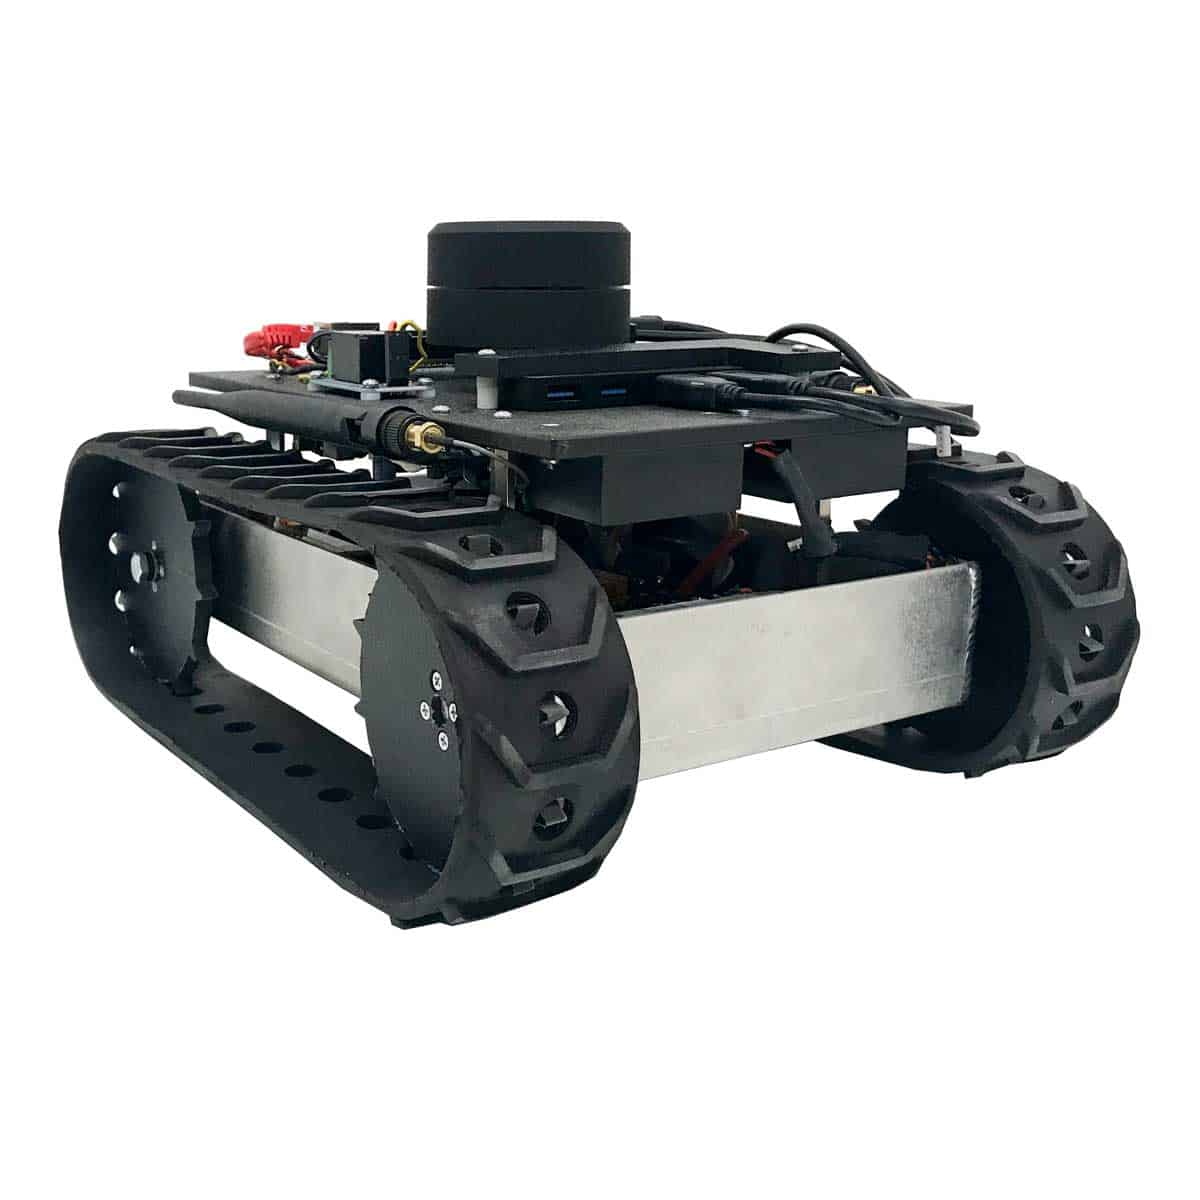 NEW Autonomous Programmable ROS SLAM Tracked Robot